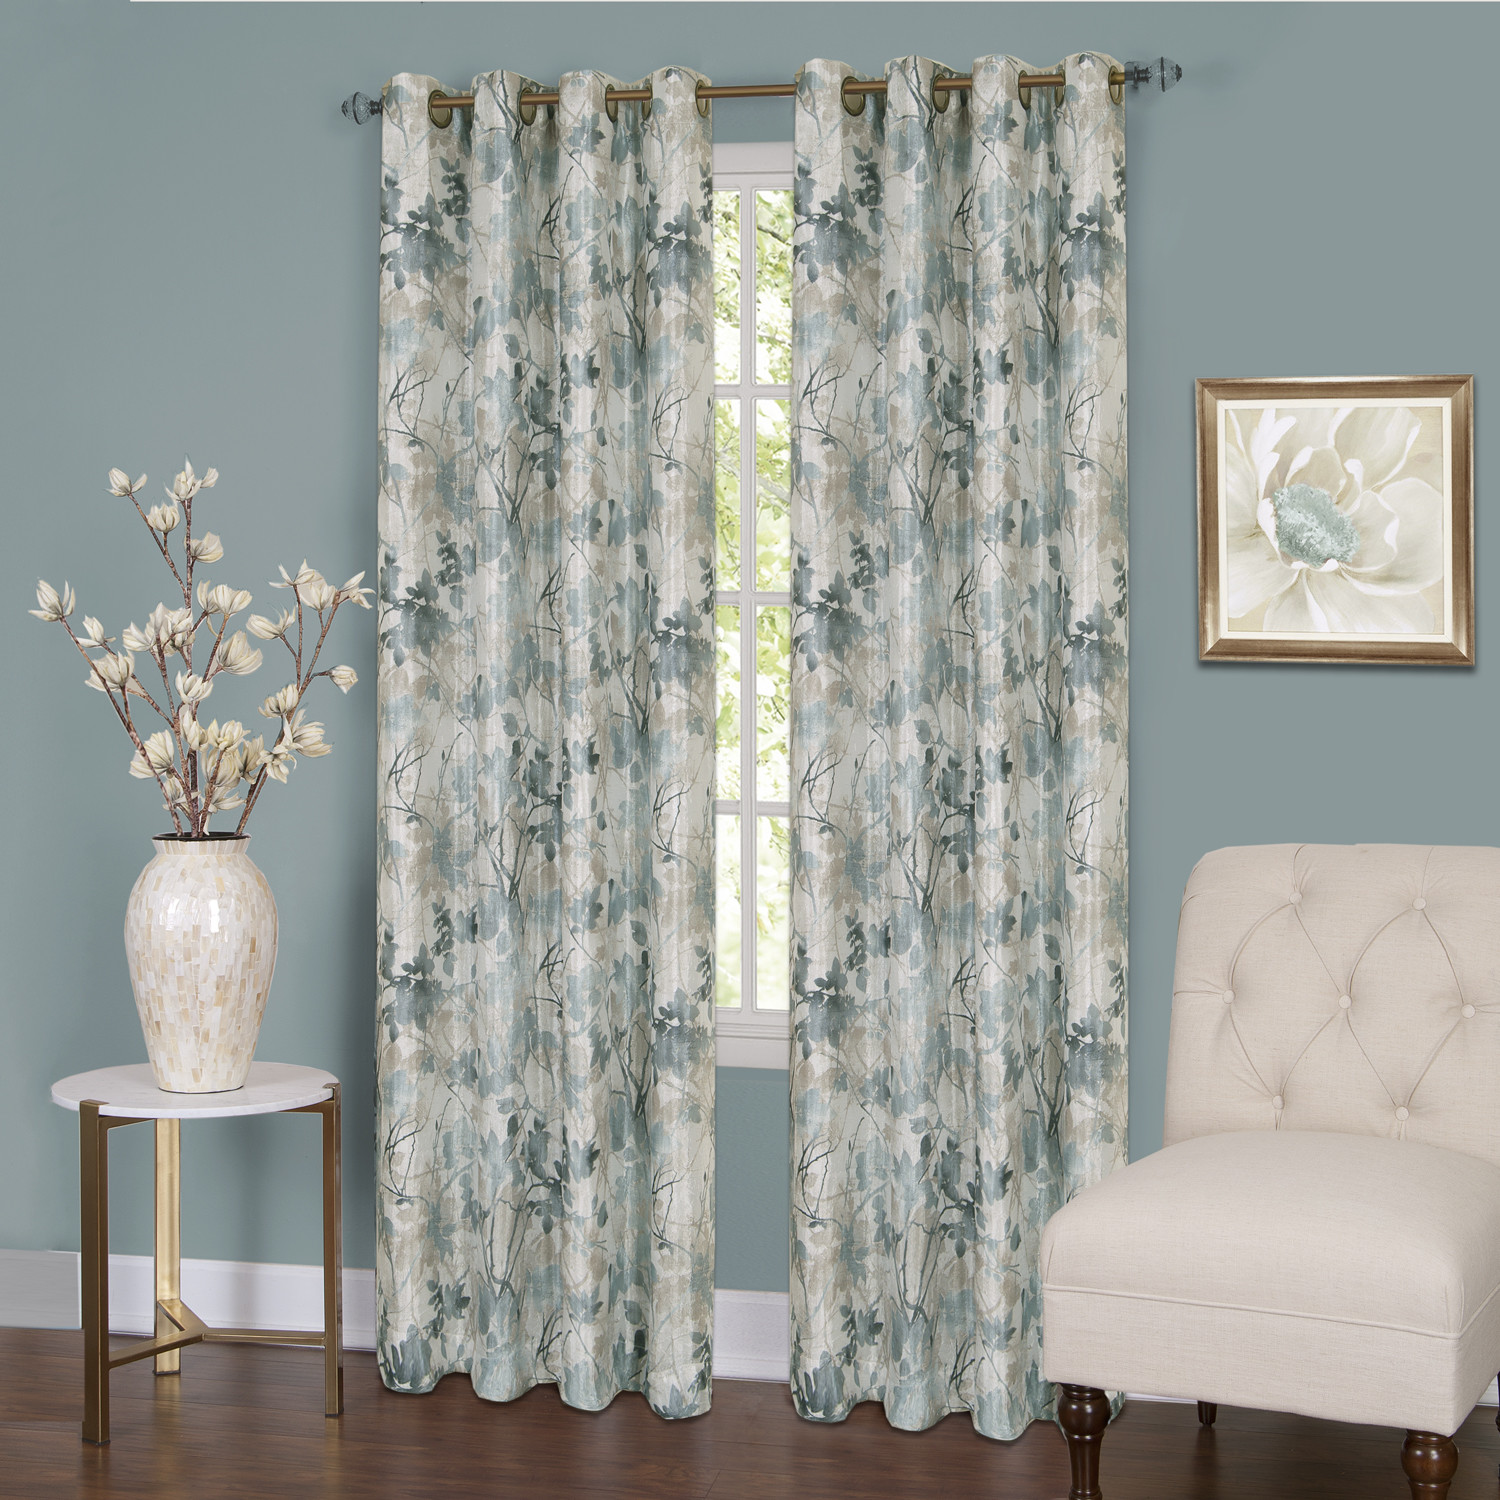 Blind Curtain Sears Ds Target Dries Soundproof